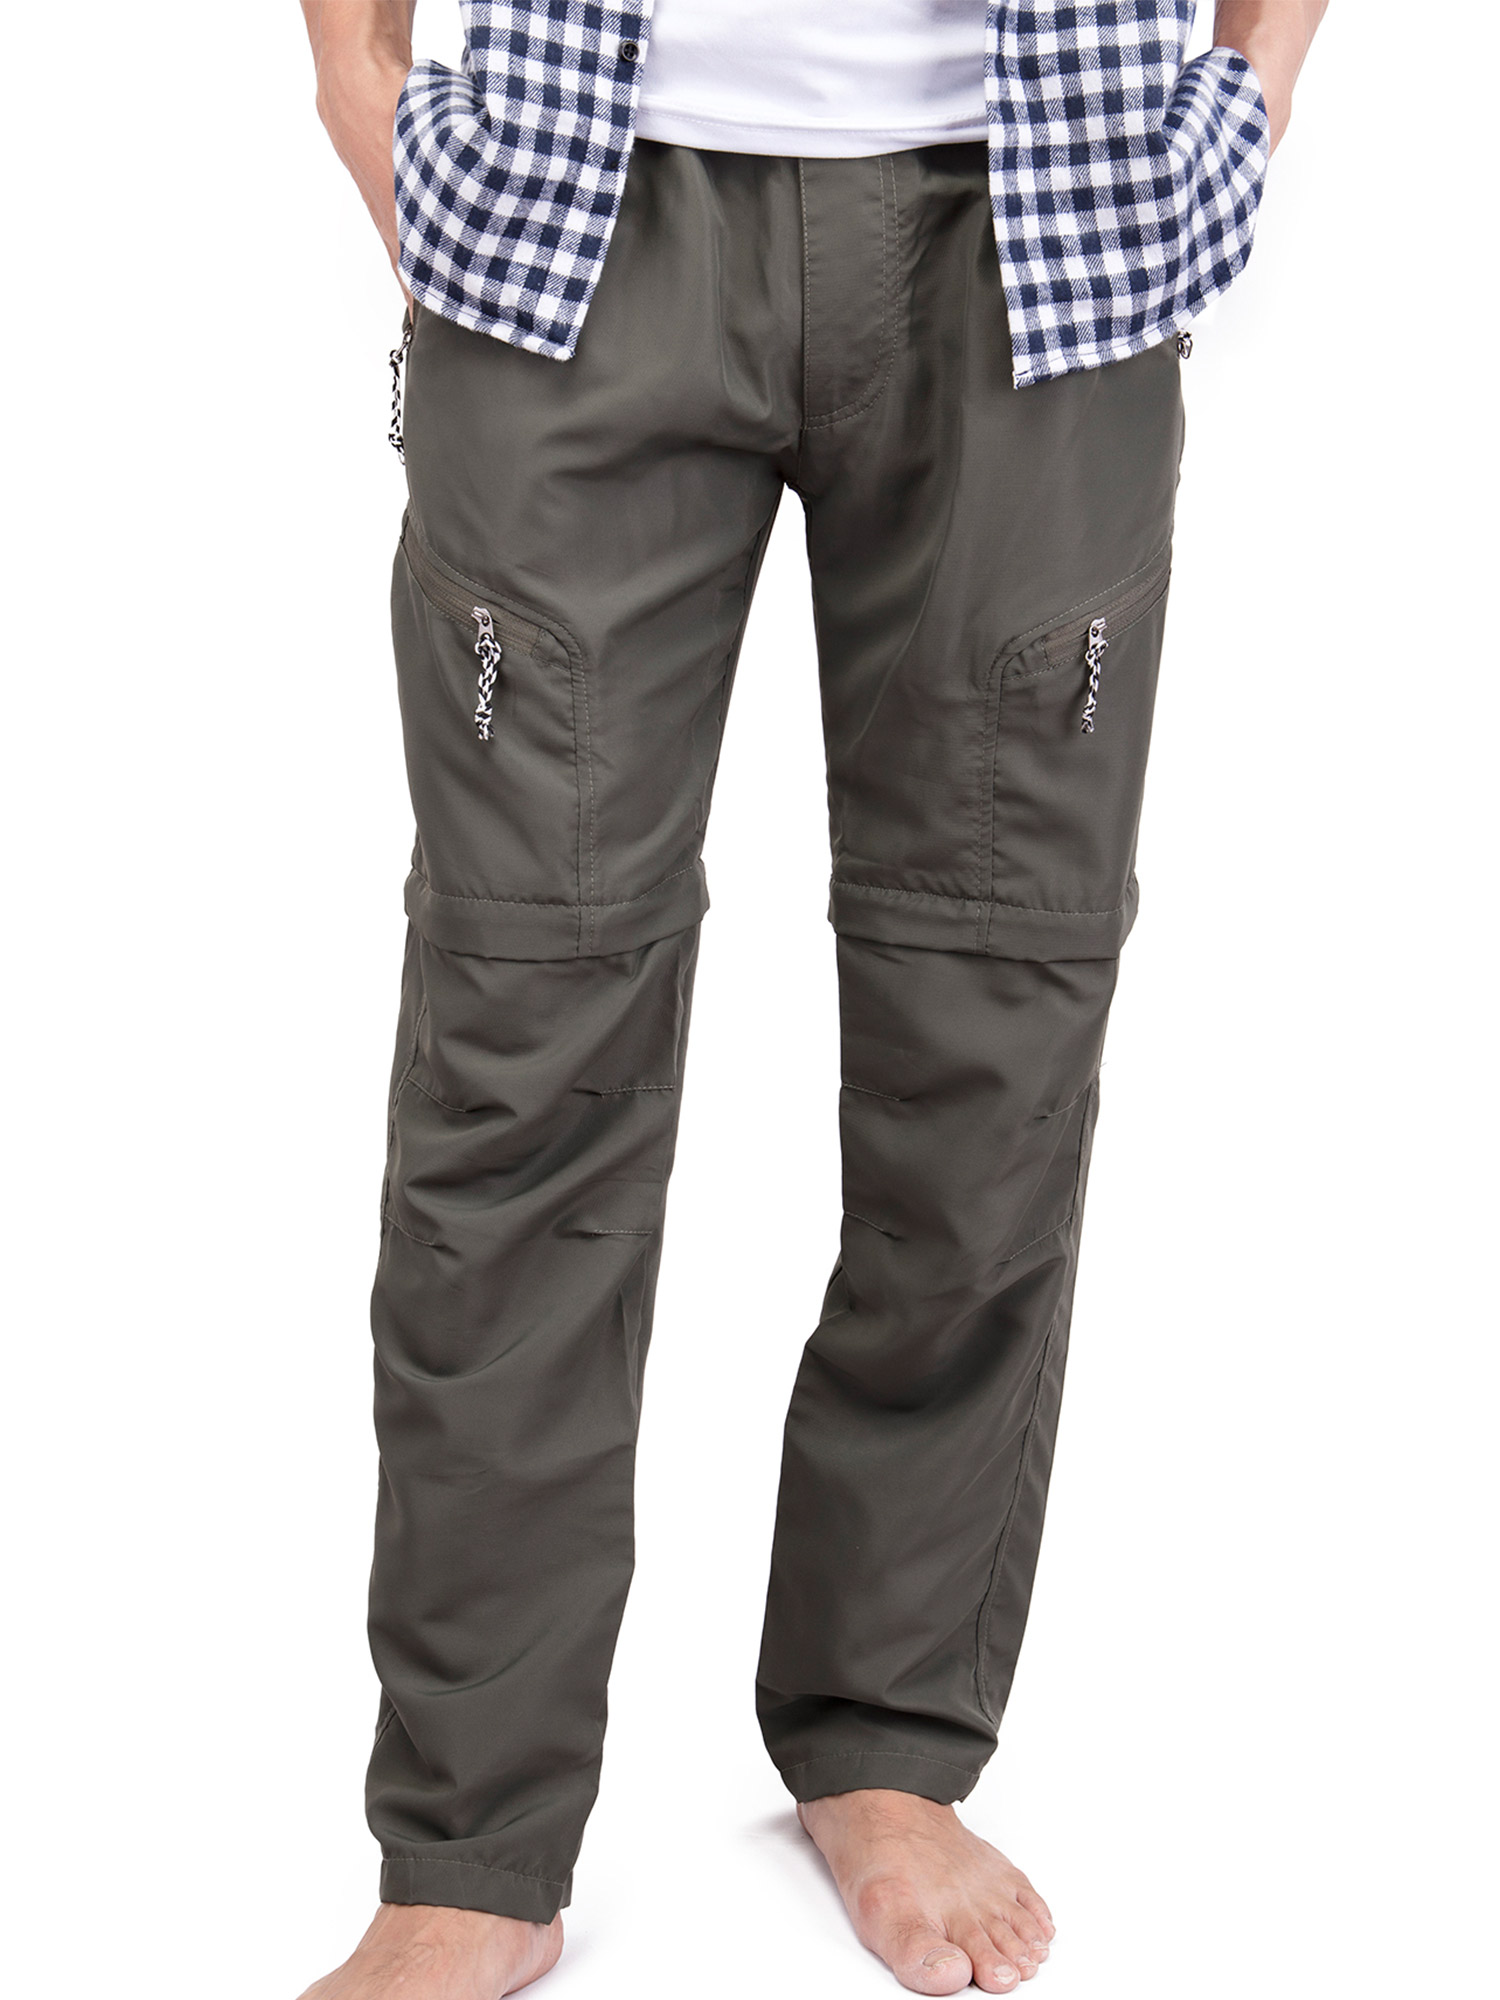 SAYFUT Men's Outdoor Anytime Quick Dry Convertible Lightweight Hiking Fishing Zip Off Cargo Work Pant